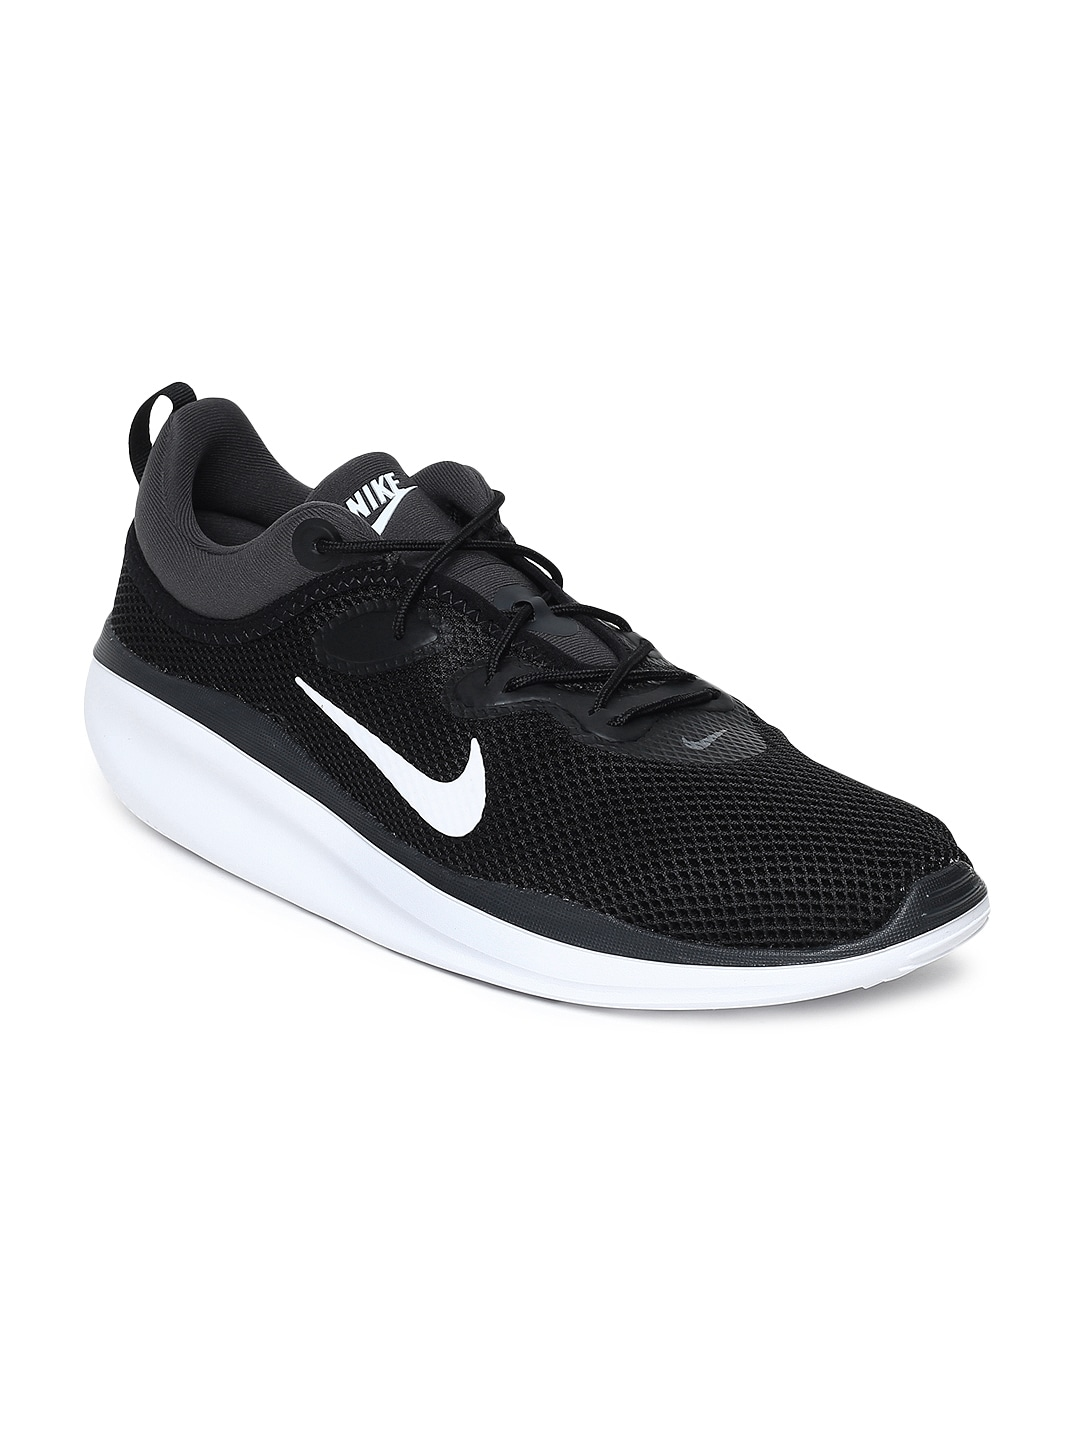 56d0a48f092be Nike Shoes - Buy Nike Shoes for Men